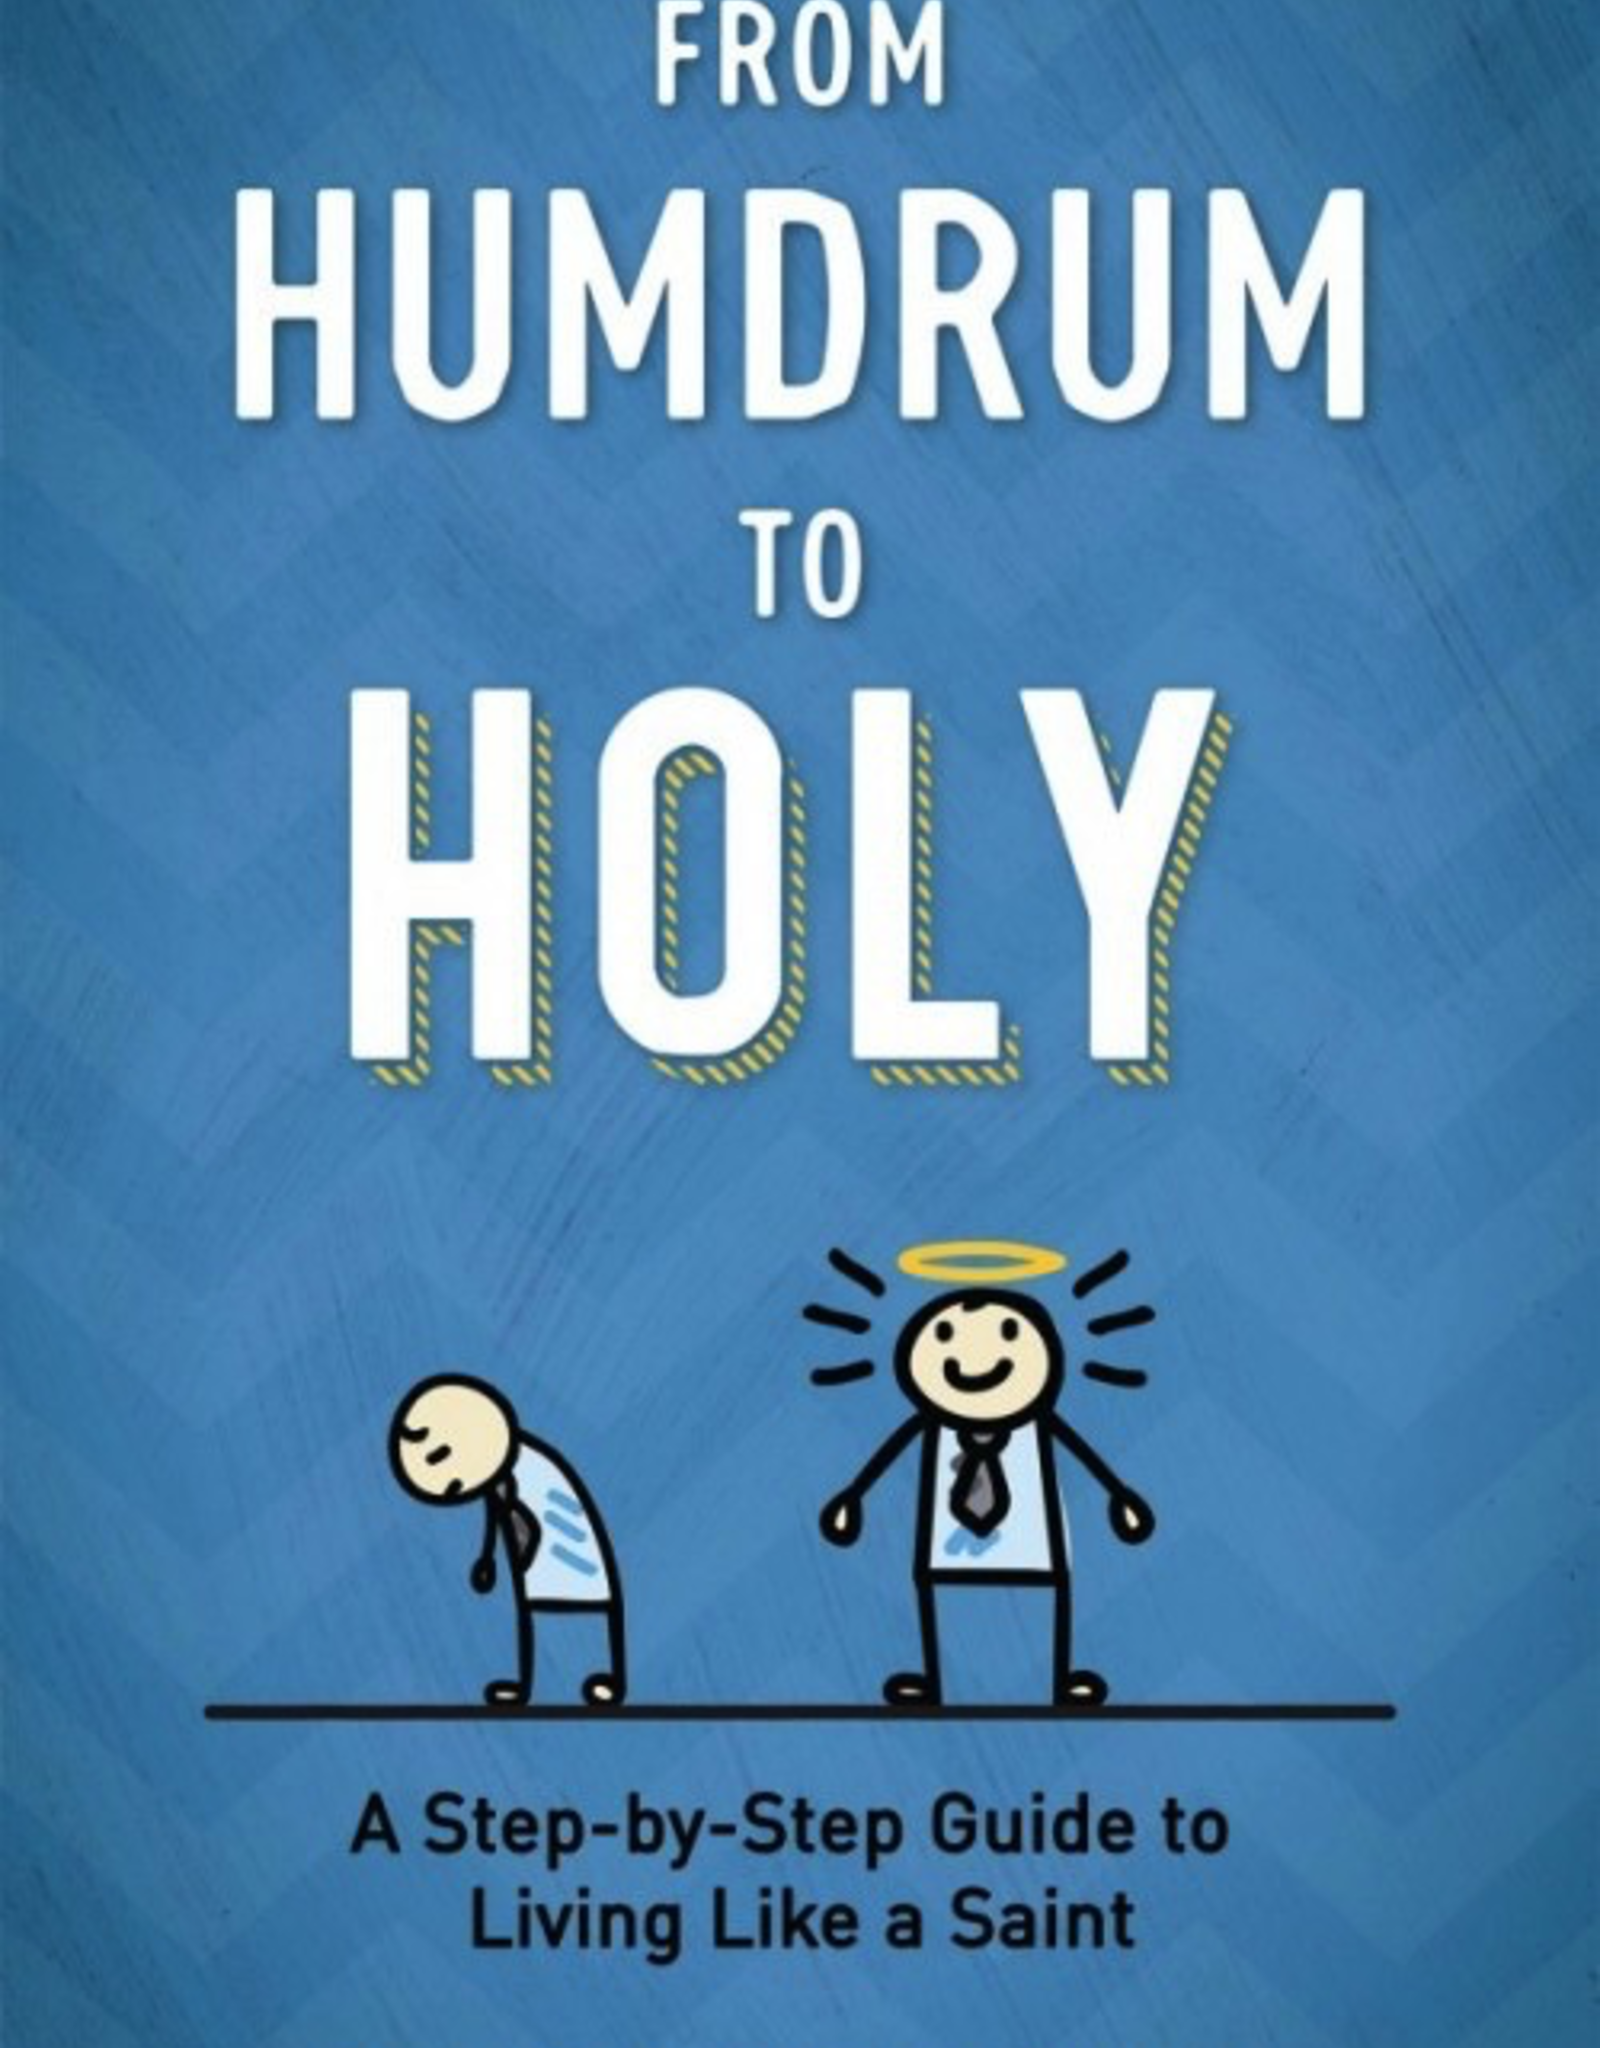 Sophia Institute From Humdrum to Holy:  A Step-by-Step Guide to Living Like a Saint, by Ed Broom (paperback)